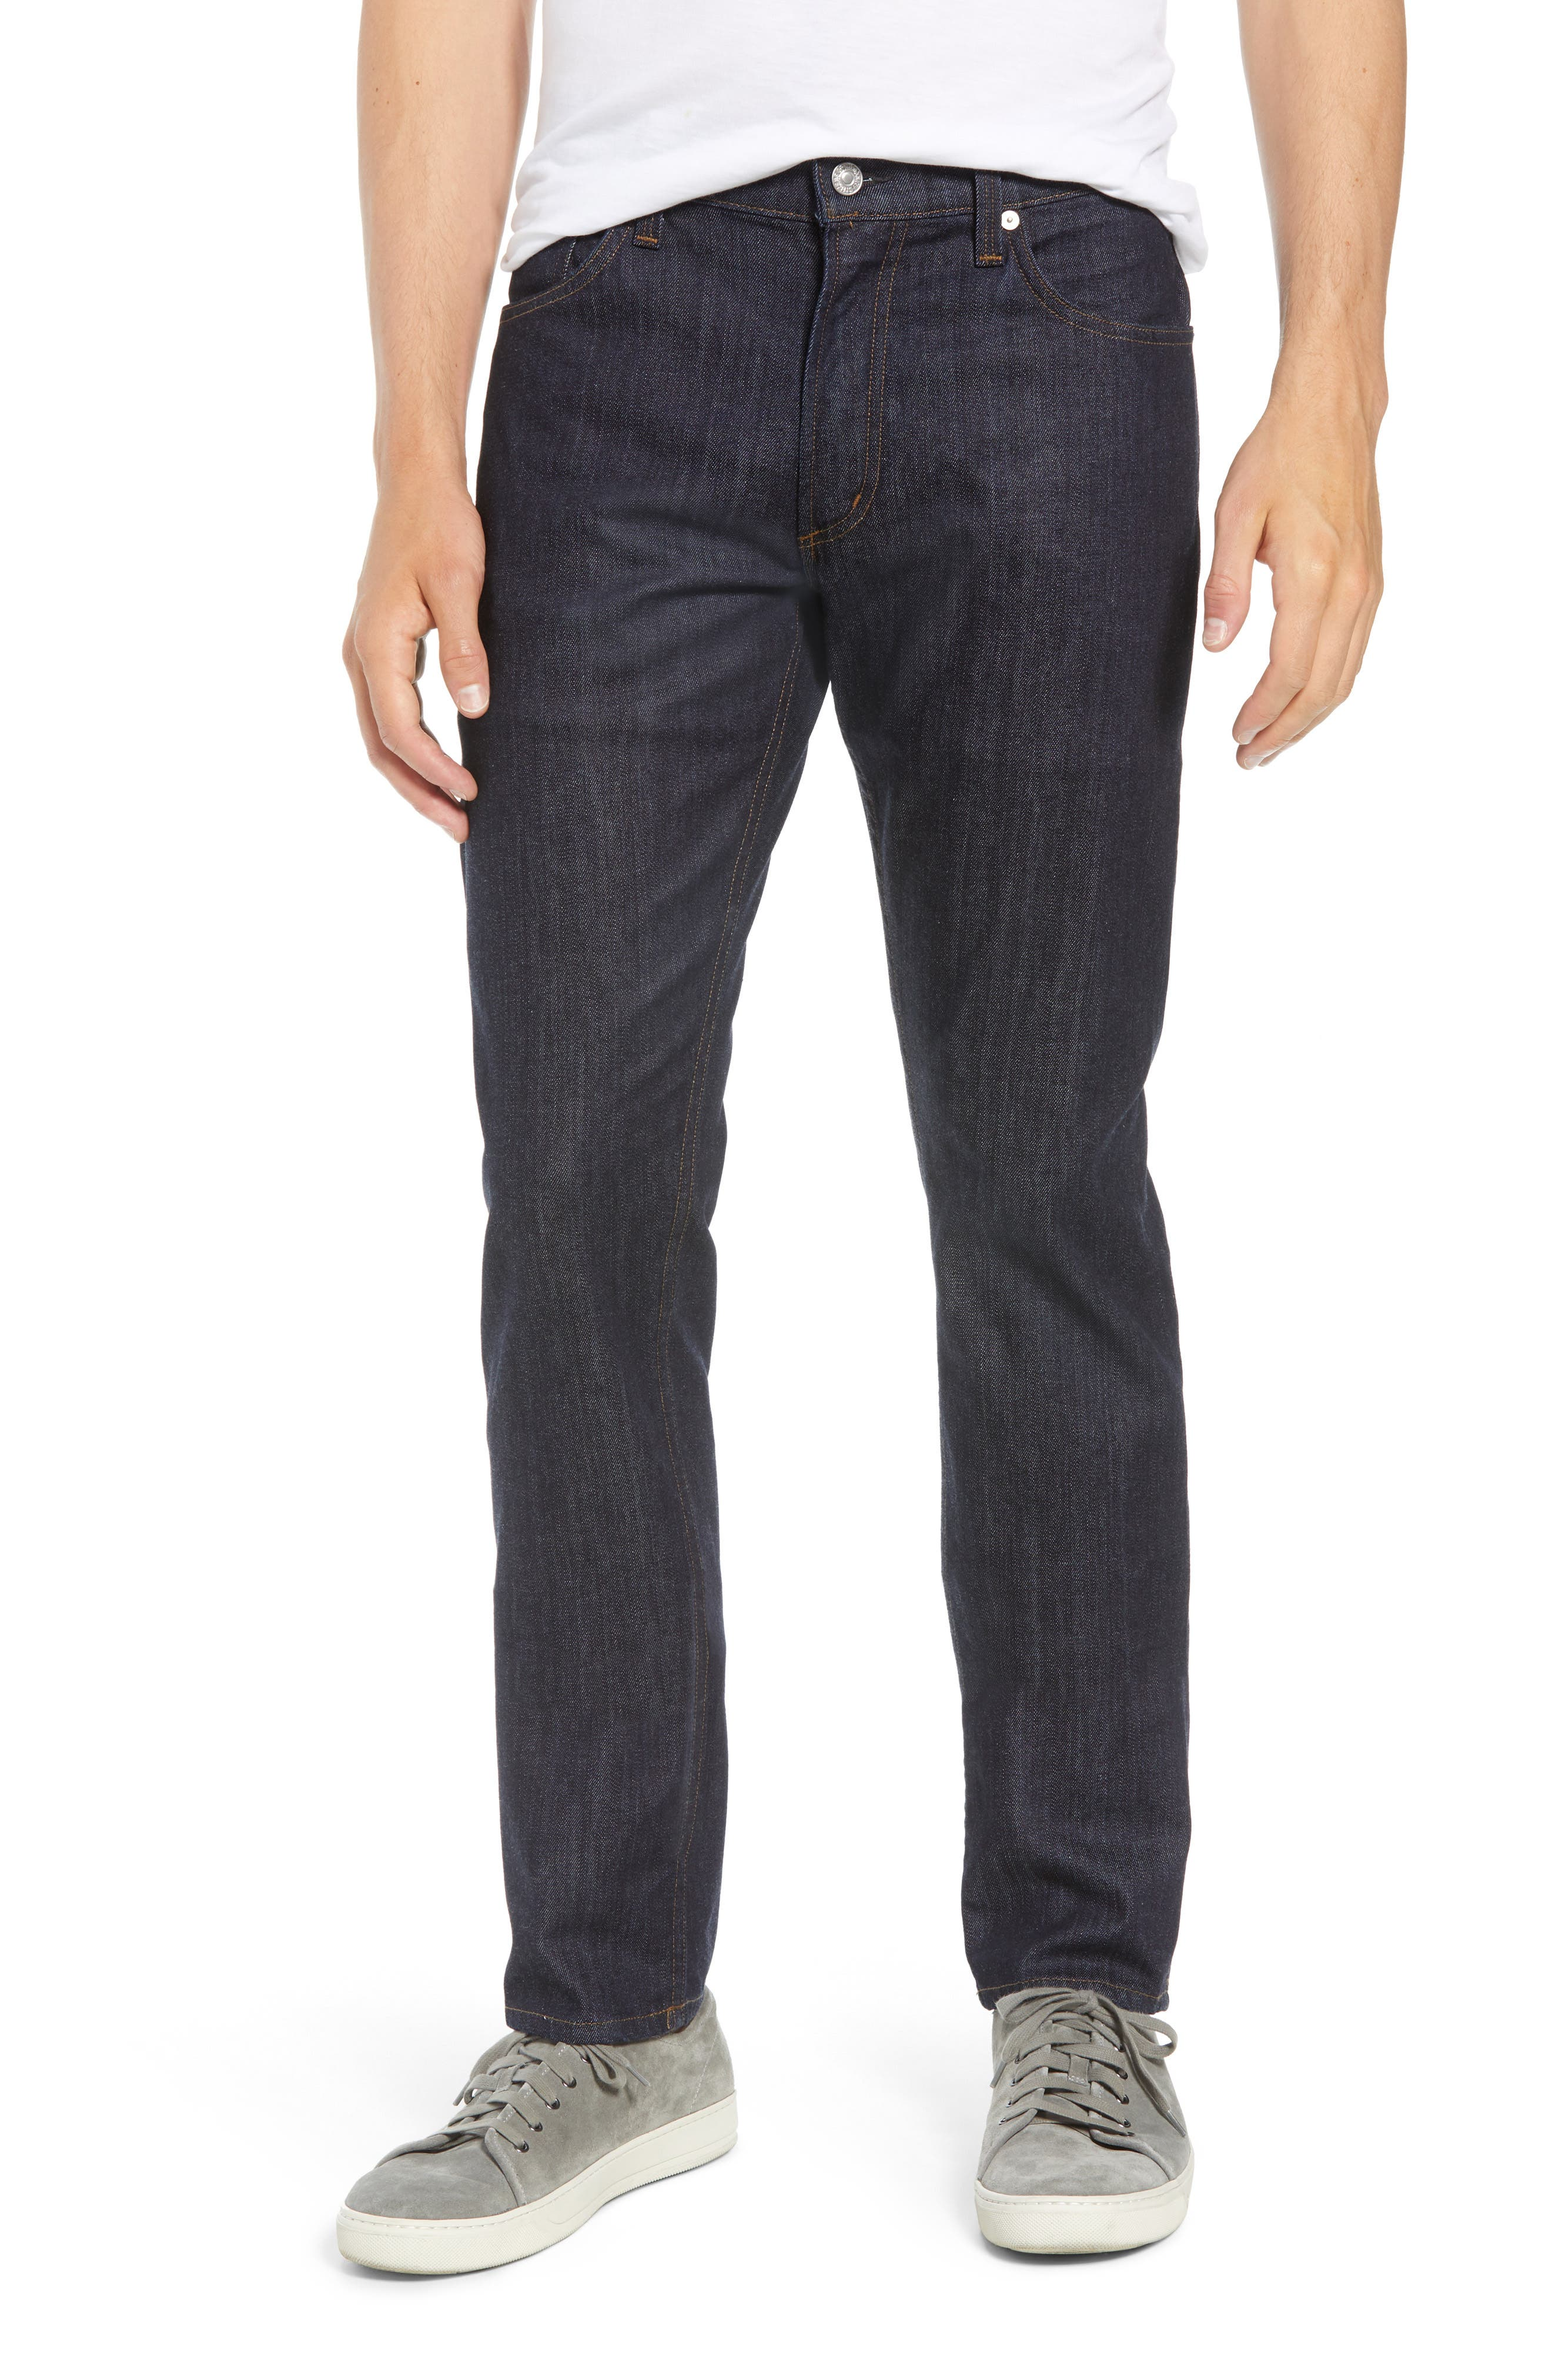 Bowery Slim Fit Jeans,                         Main,                         color, SUPERIOR